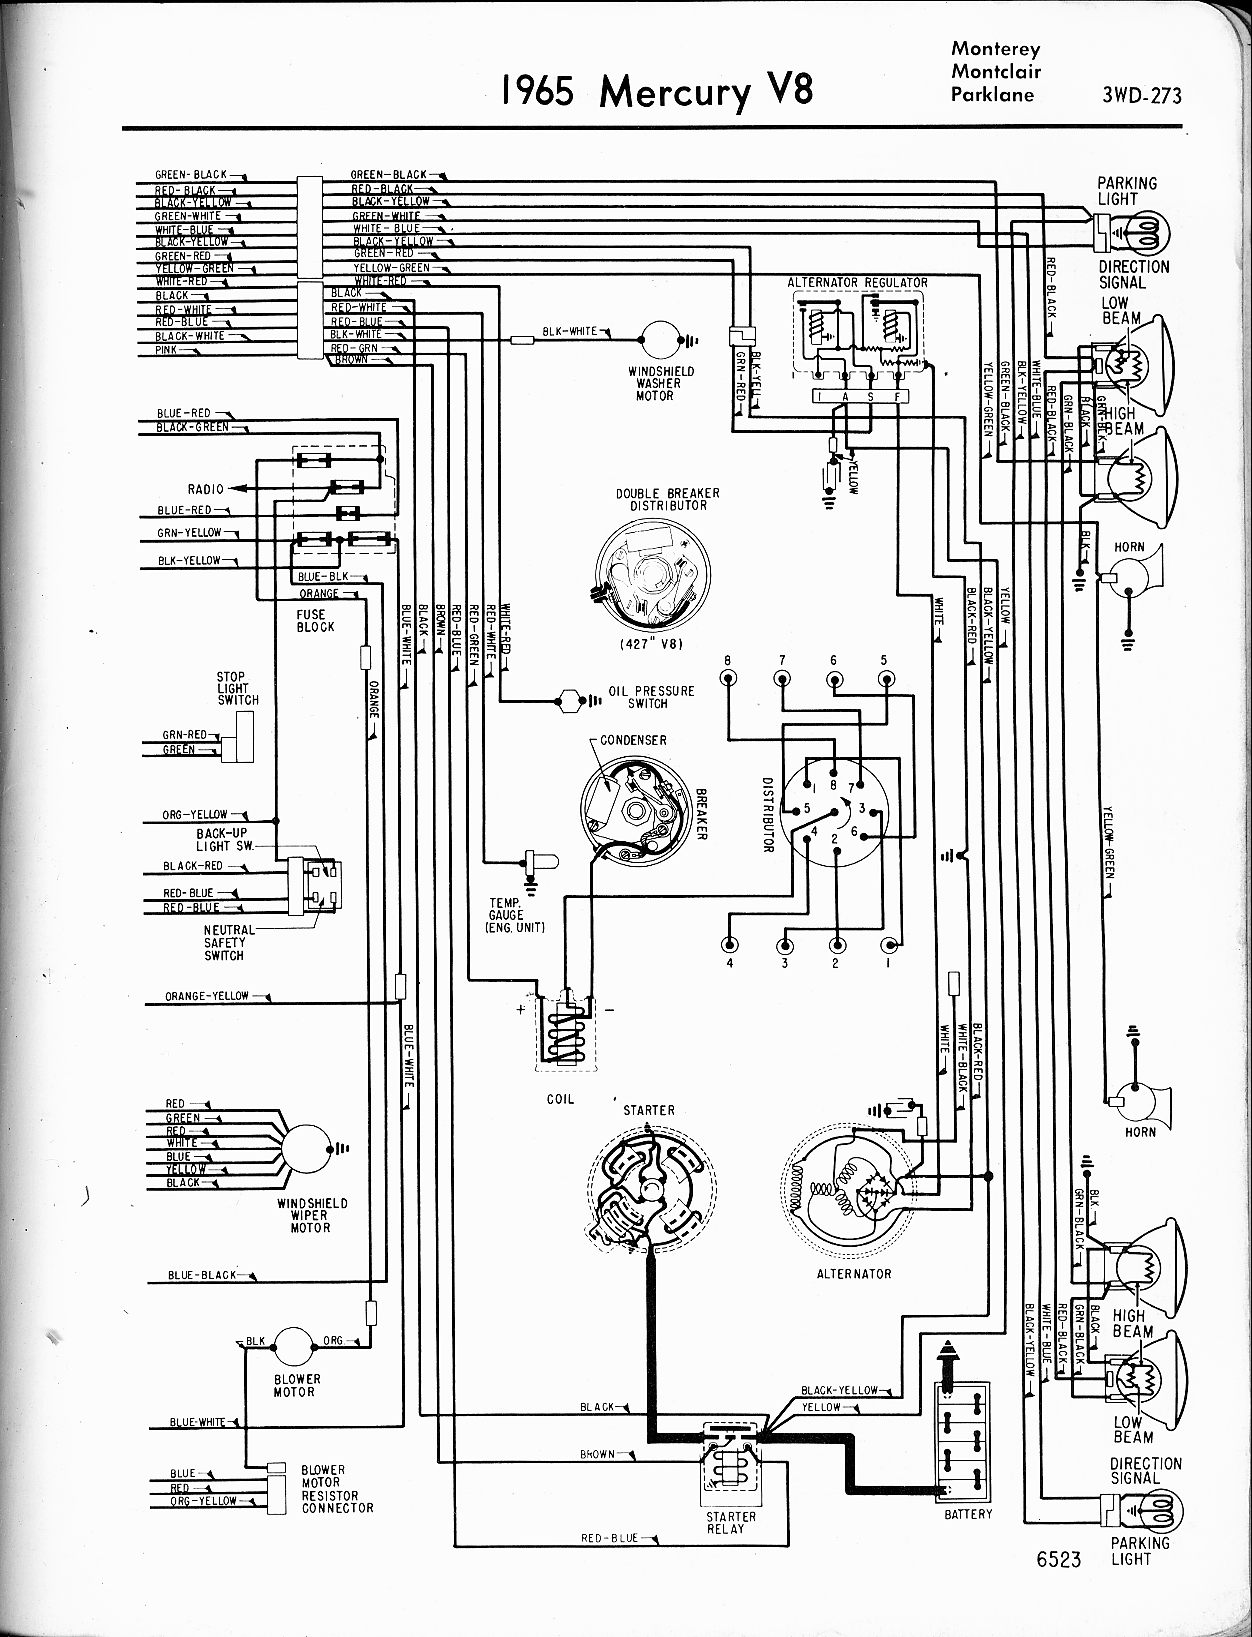 mercury wiring diagrams the old car manual project 1965 v8 monterey montclair parklane left page